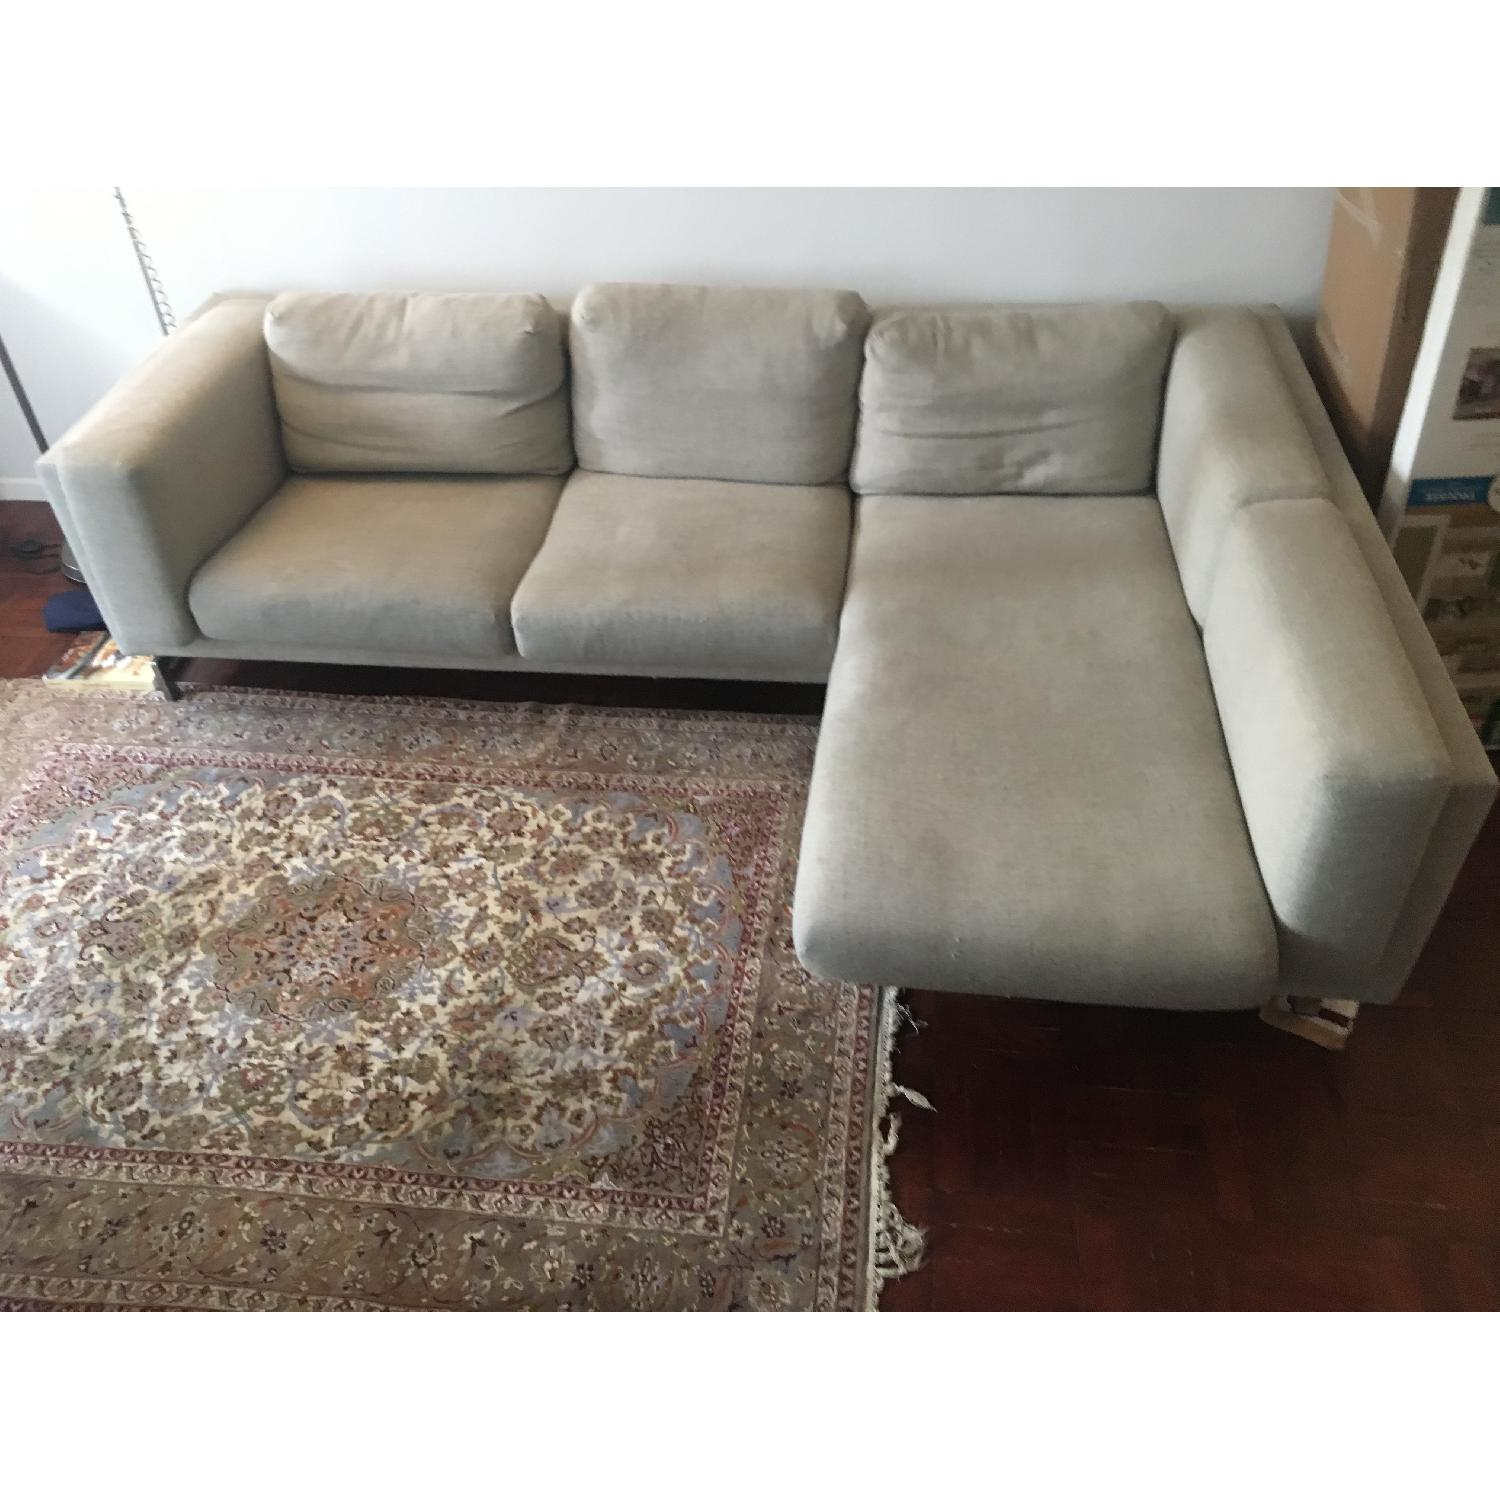 Ikea Nockeby Sectional Sofa w/ Right Chaise-1